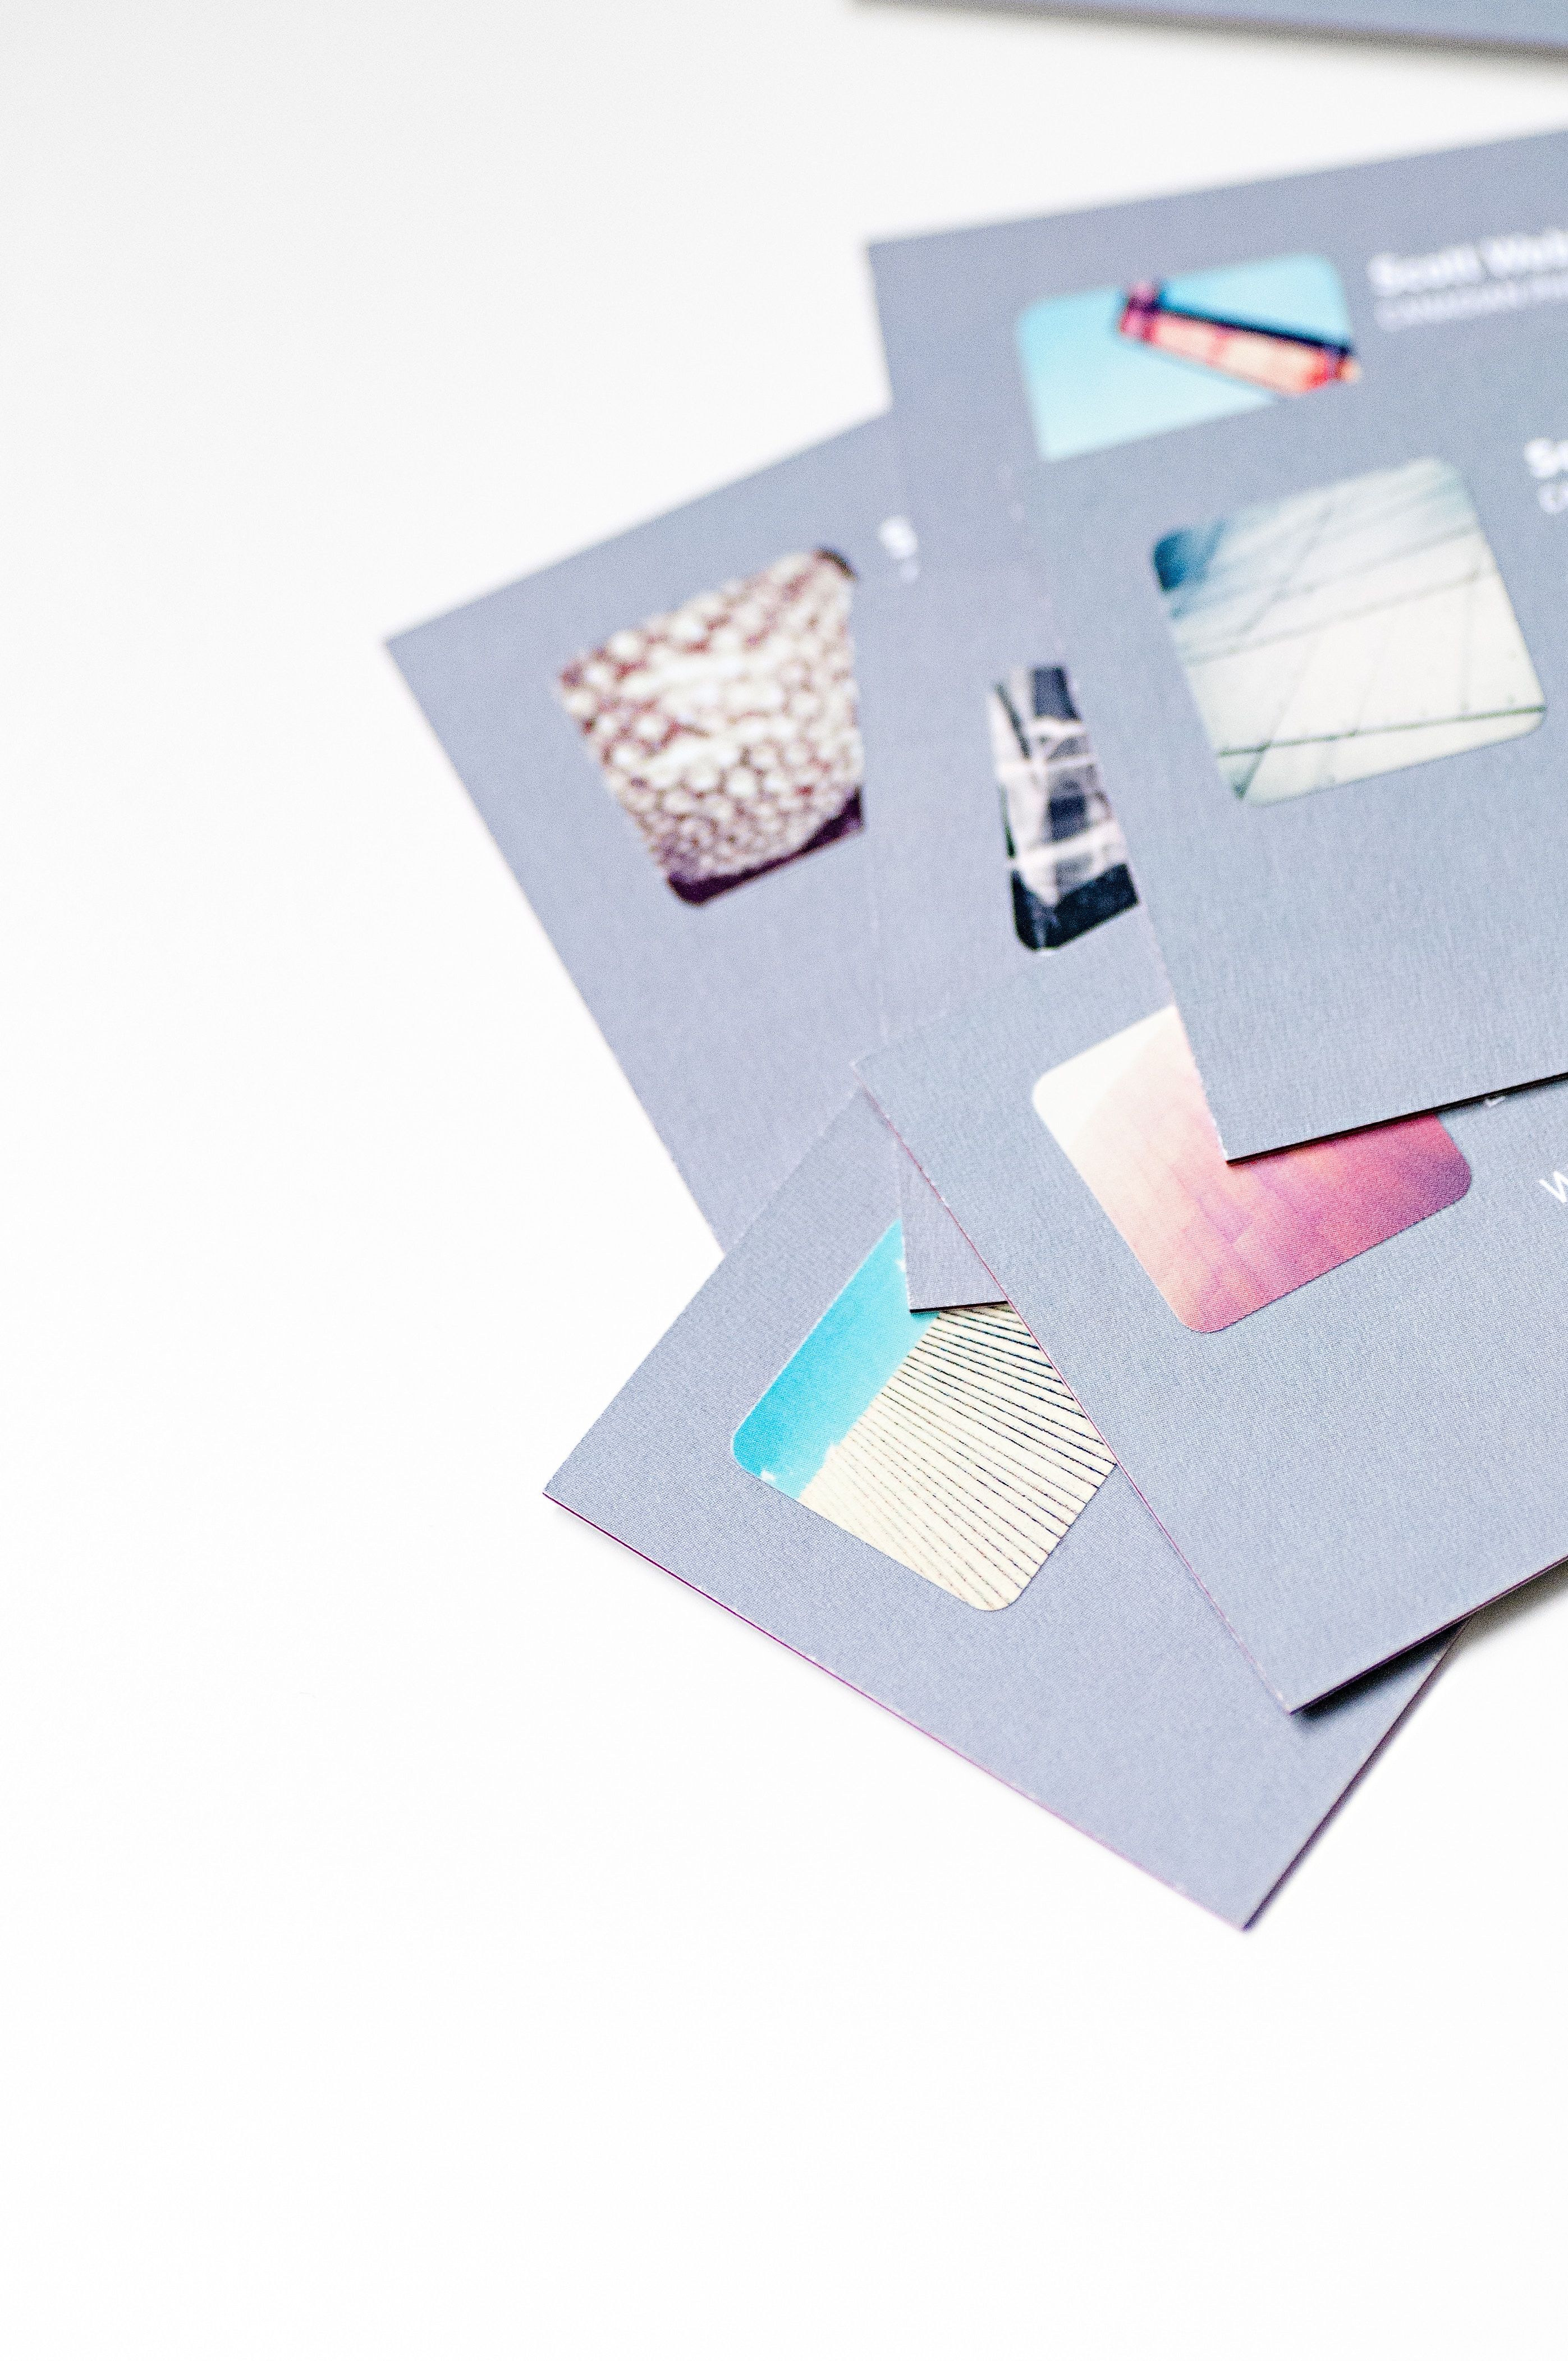 Photo of Gray Cards on White Surfafce